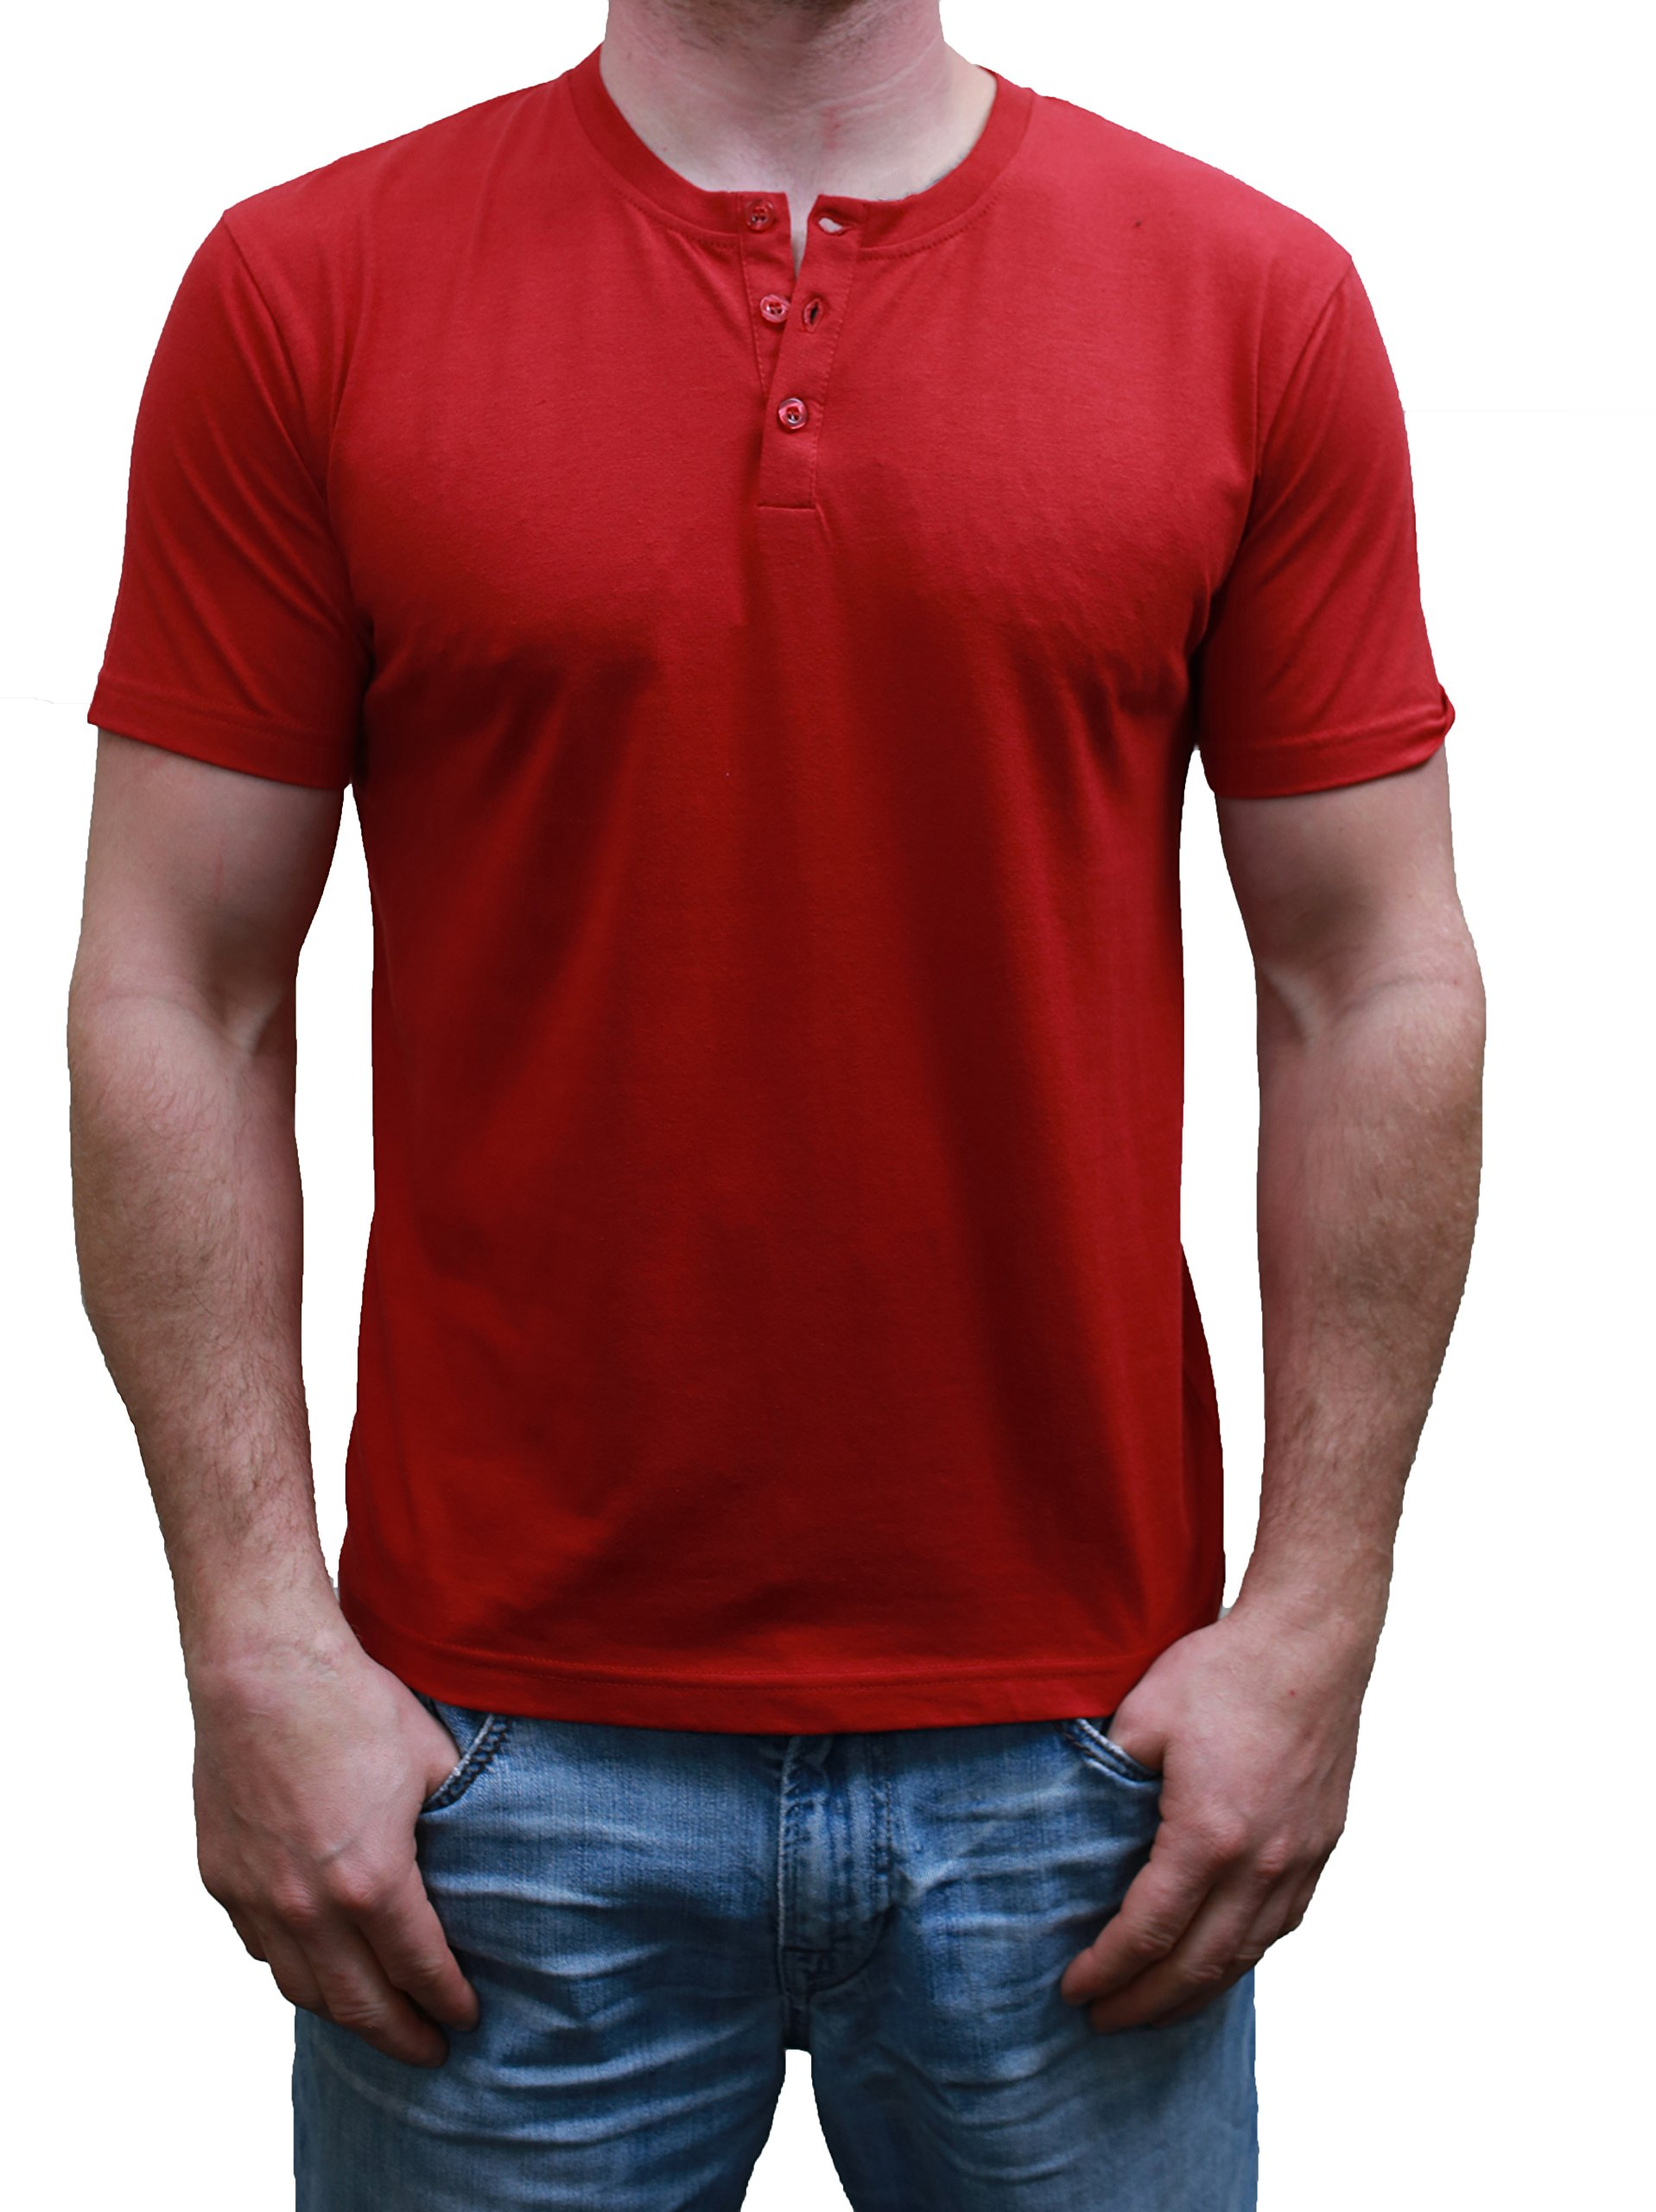 Henley Mens  Short Sleeve TShirt with 3 Buttons, Solid Burgundy, Medium